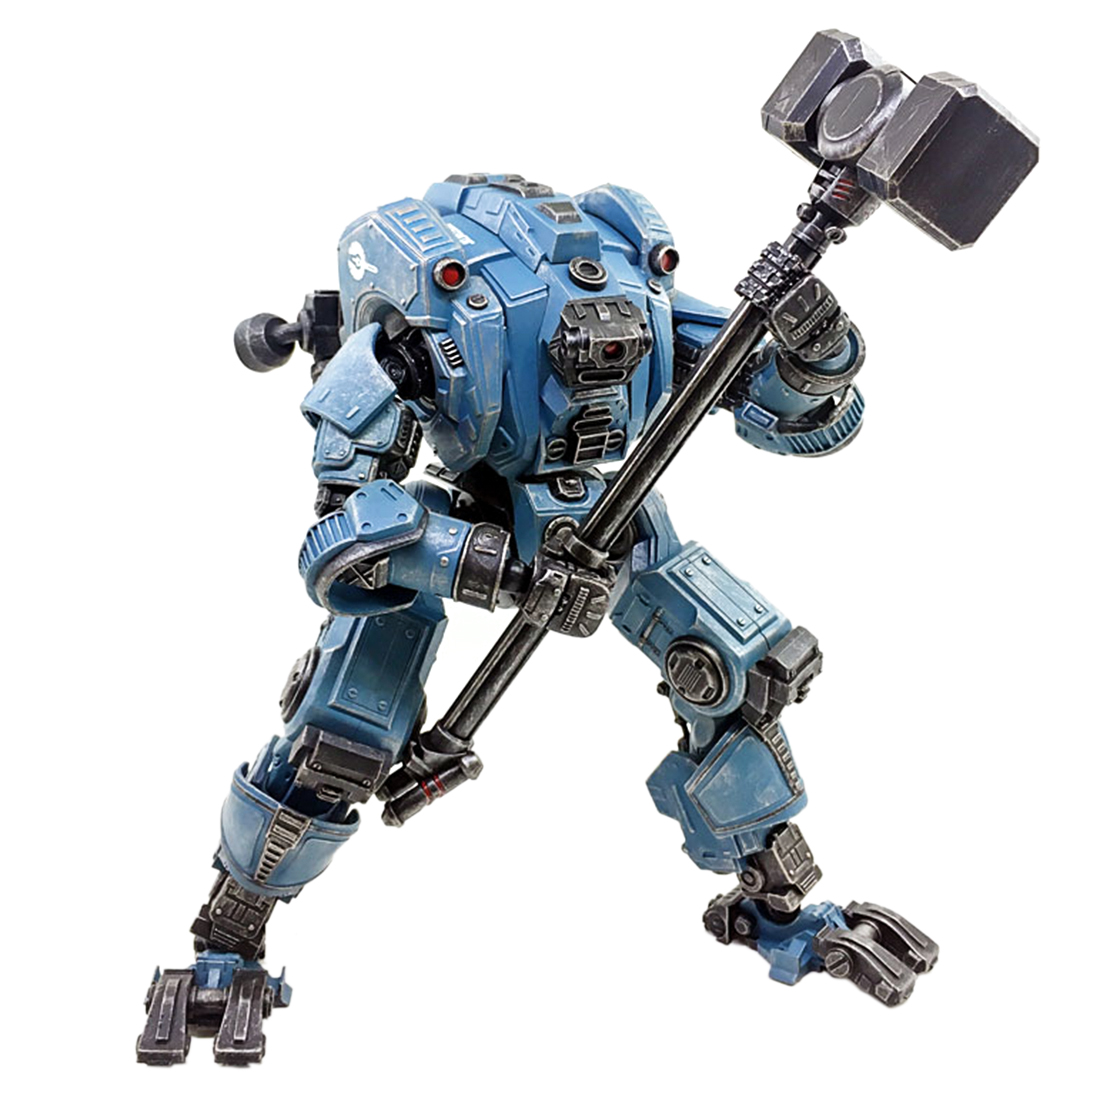 Mecha Model Building Kits Pangu DIY 3D Assembly Fine Soldier Model With High Degree Of Reduction